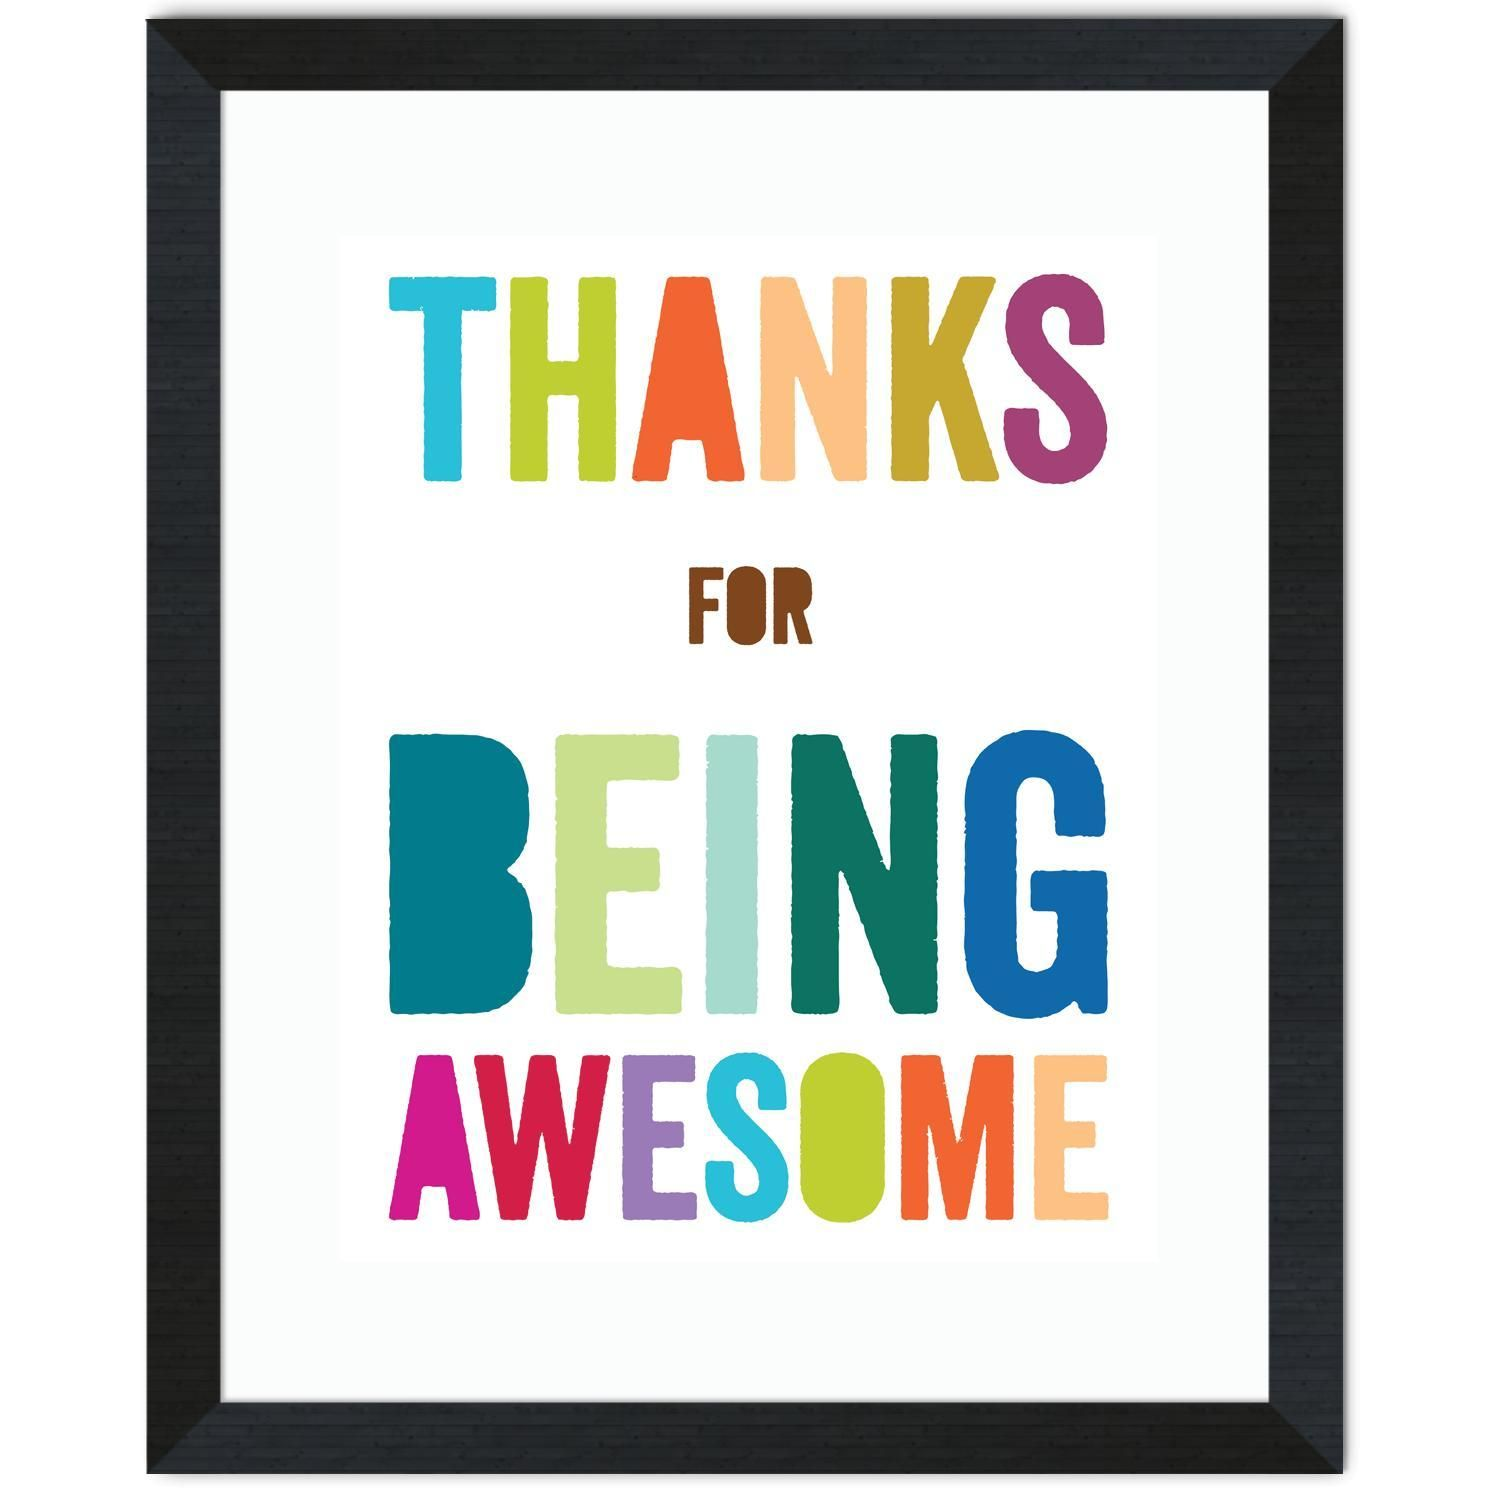 Employee Appreciation Quotes Fascinating For You Yes You Awesomeapril 2304  Work Fun  Pinterest